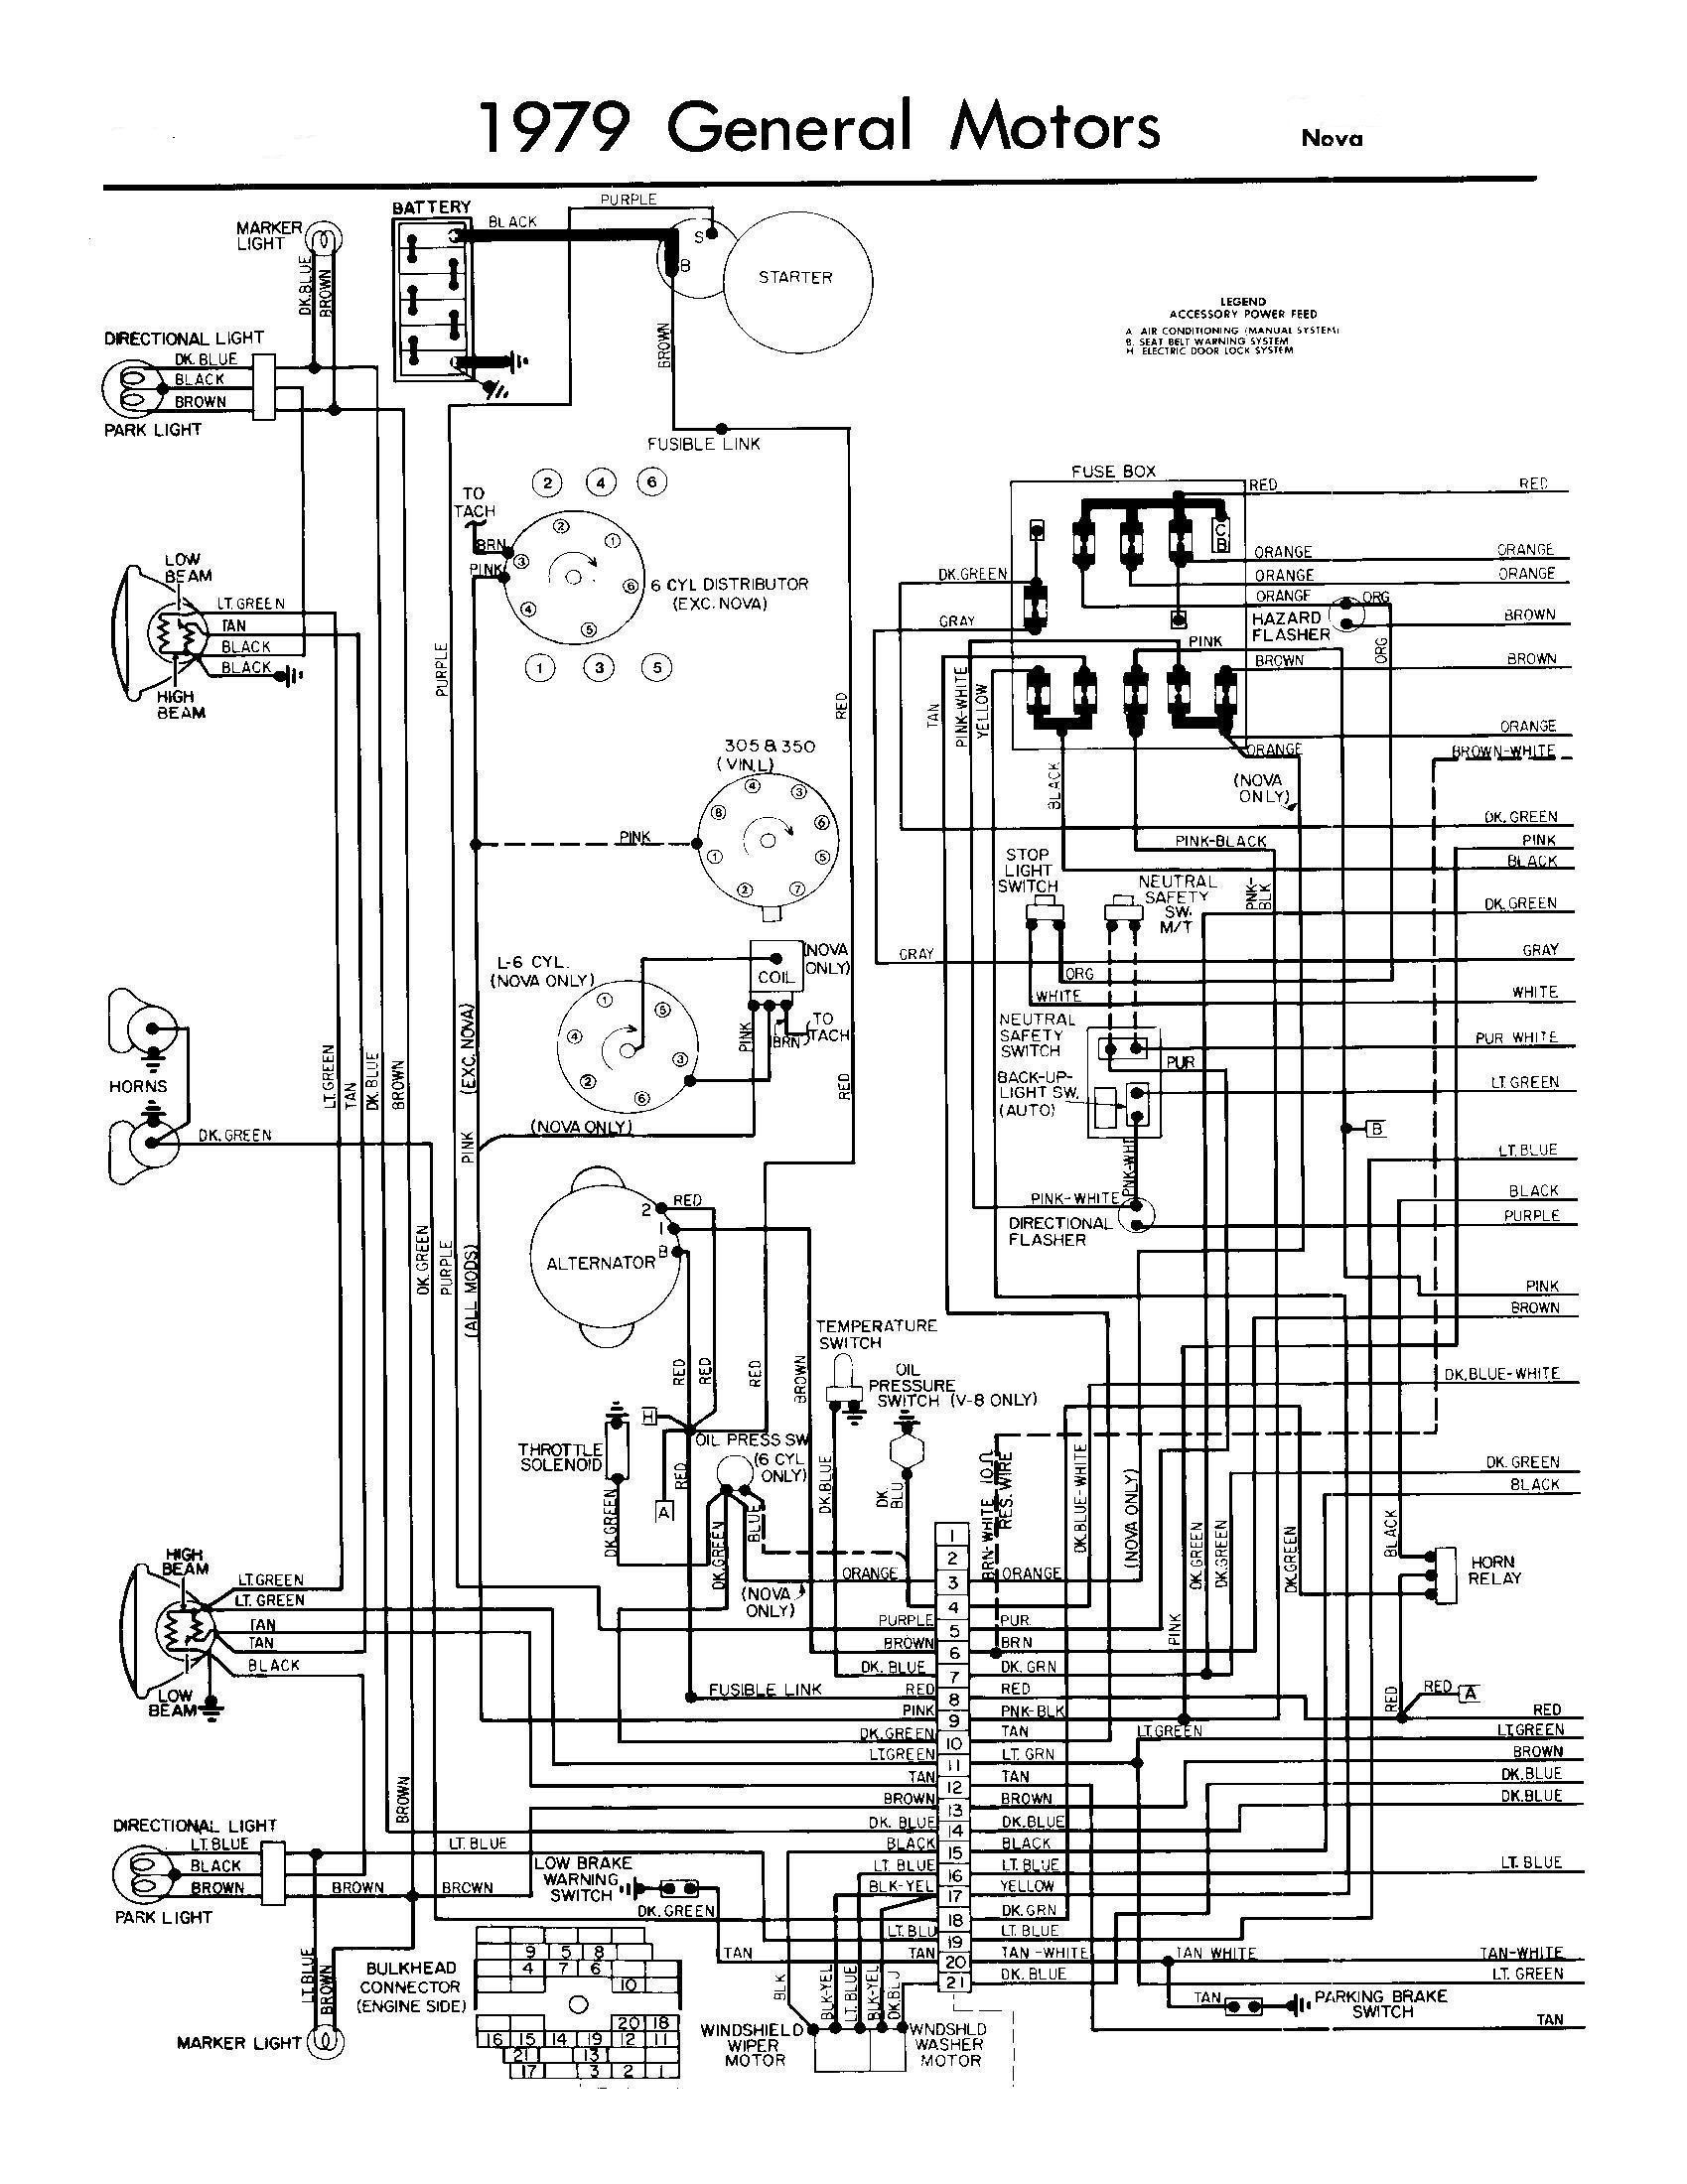 77 Toyota Pickup Wiring Diagram - Suzuki Samurai Fuel Filter Location for  Wiring Diagram Schematics | 1979 Toyota Pickup Wiring Harness |  | Wiring Diagram Schematics